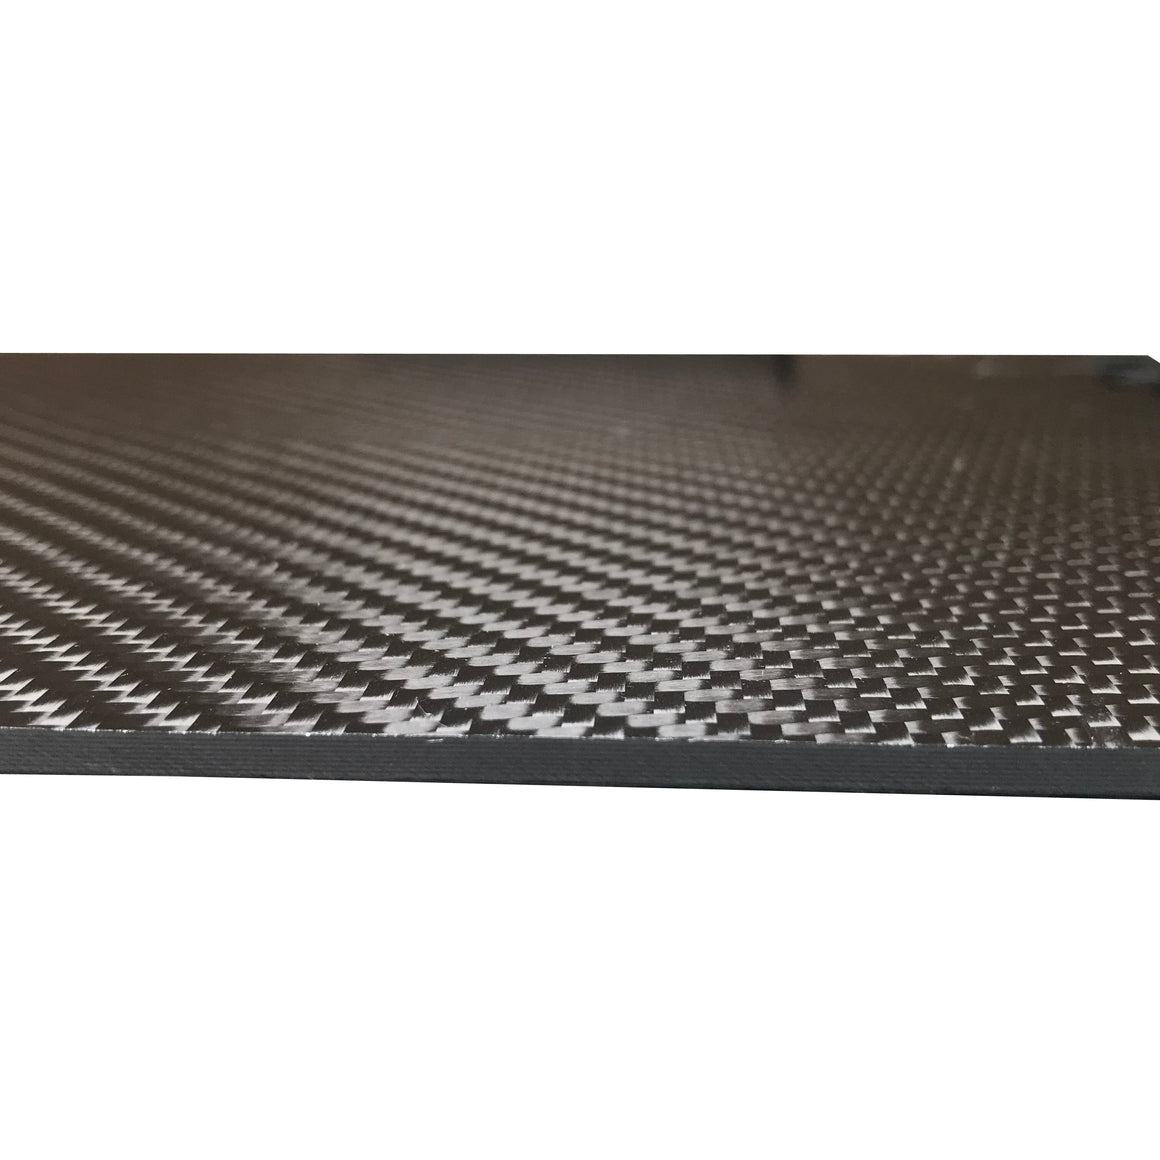 Carbon Fiber Plating  - 100mm x 250mm x 2mm - 3K Carbon Fiber Plate High Gloss Finish